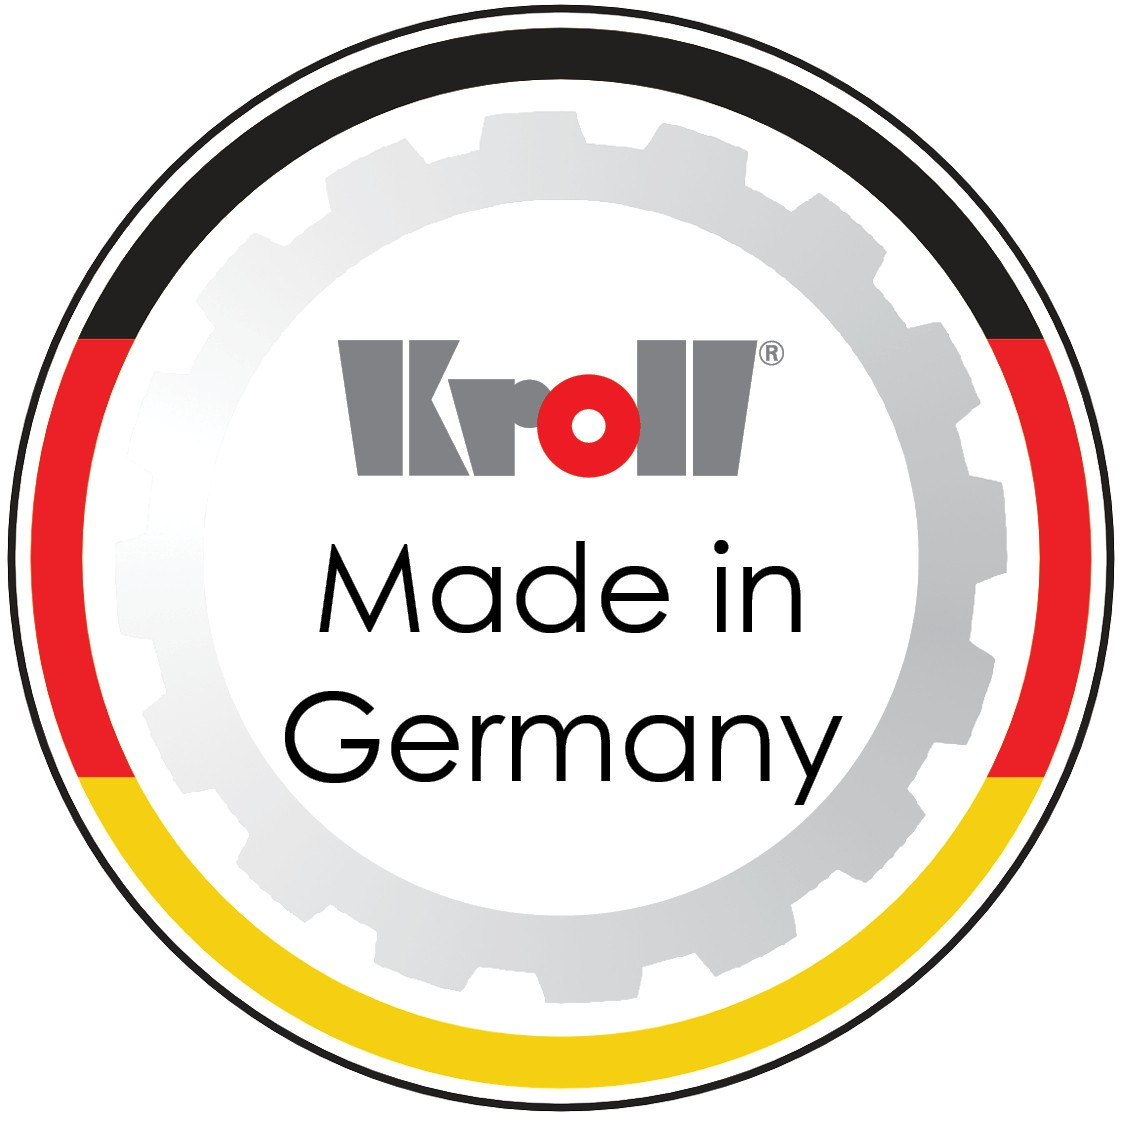 Kroll made in Germany